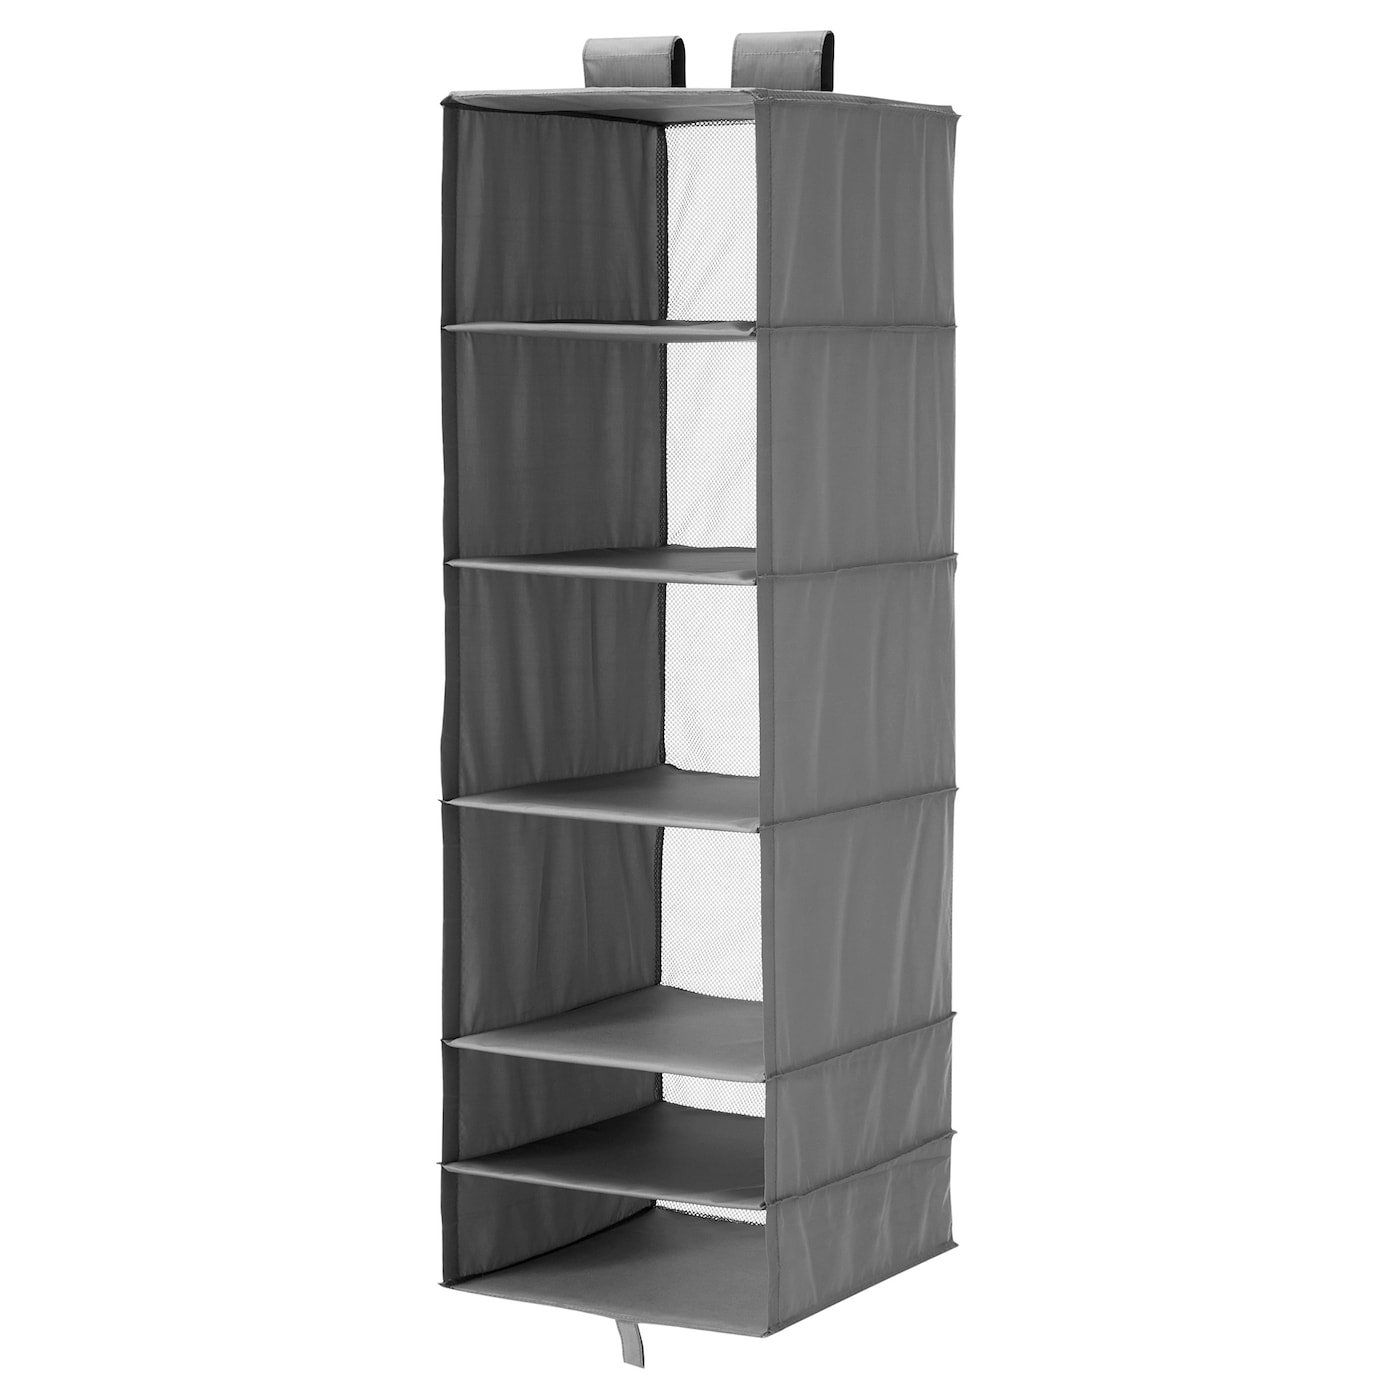 Beau IKEA SKUBB Storage With 6 Compartments The Hook And Loop Fastener Makes It  Easy To Hang